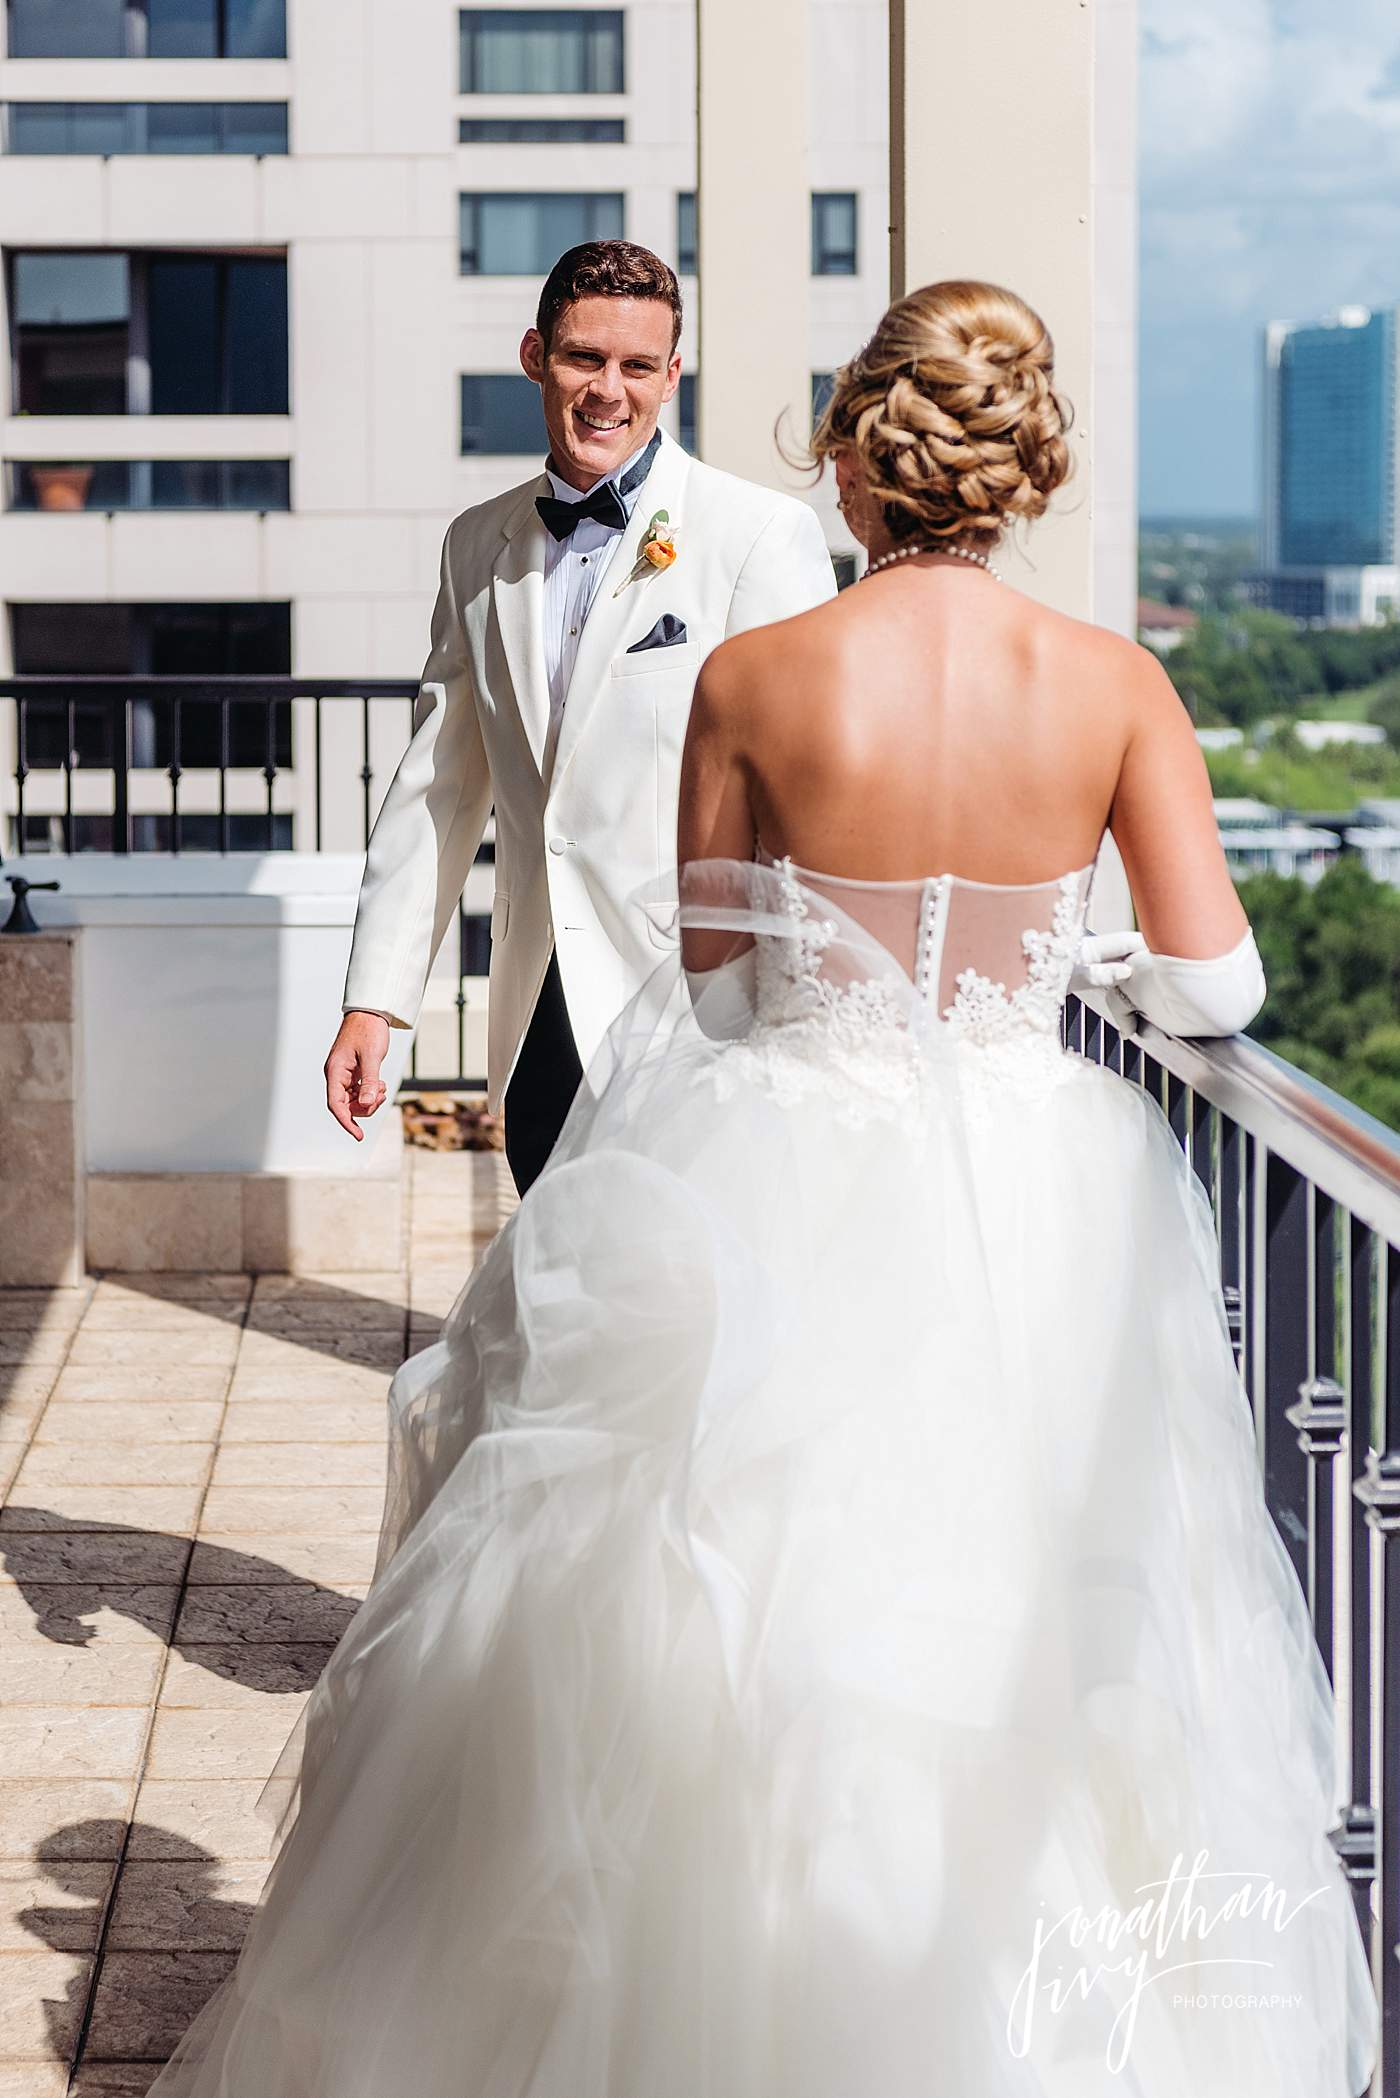 White Tuxedo Jacket,White Tux,Groom White Tux,Groom White Tuxedo,Groom White Tux Jacket